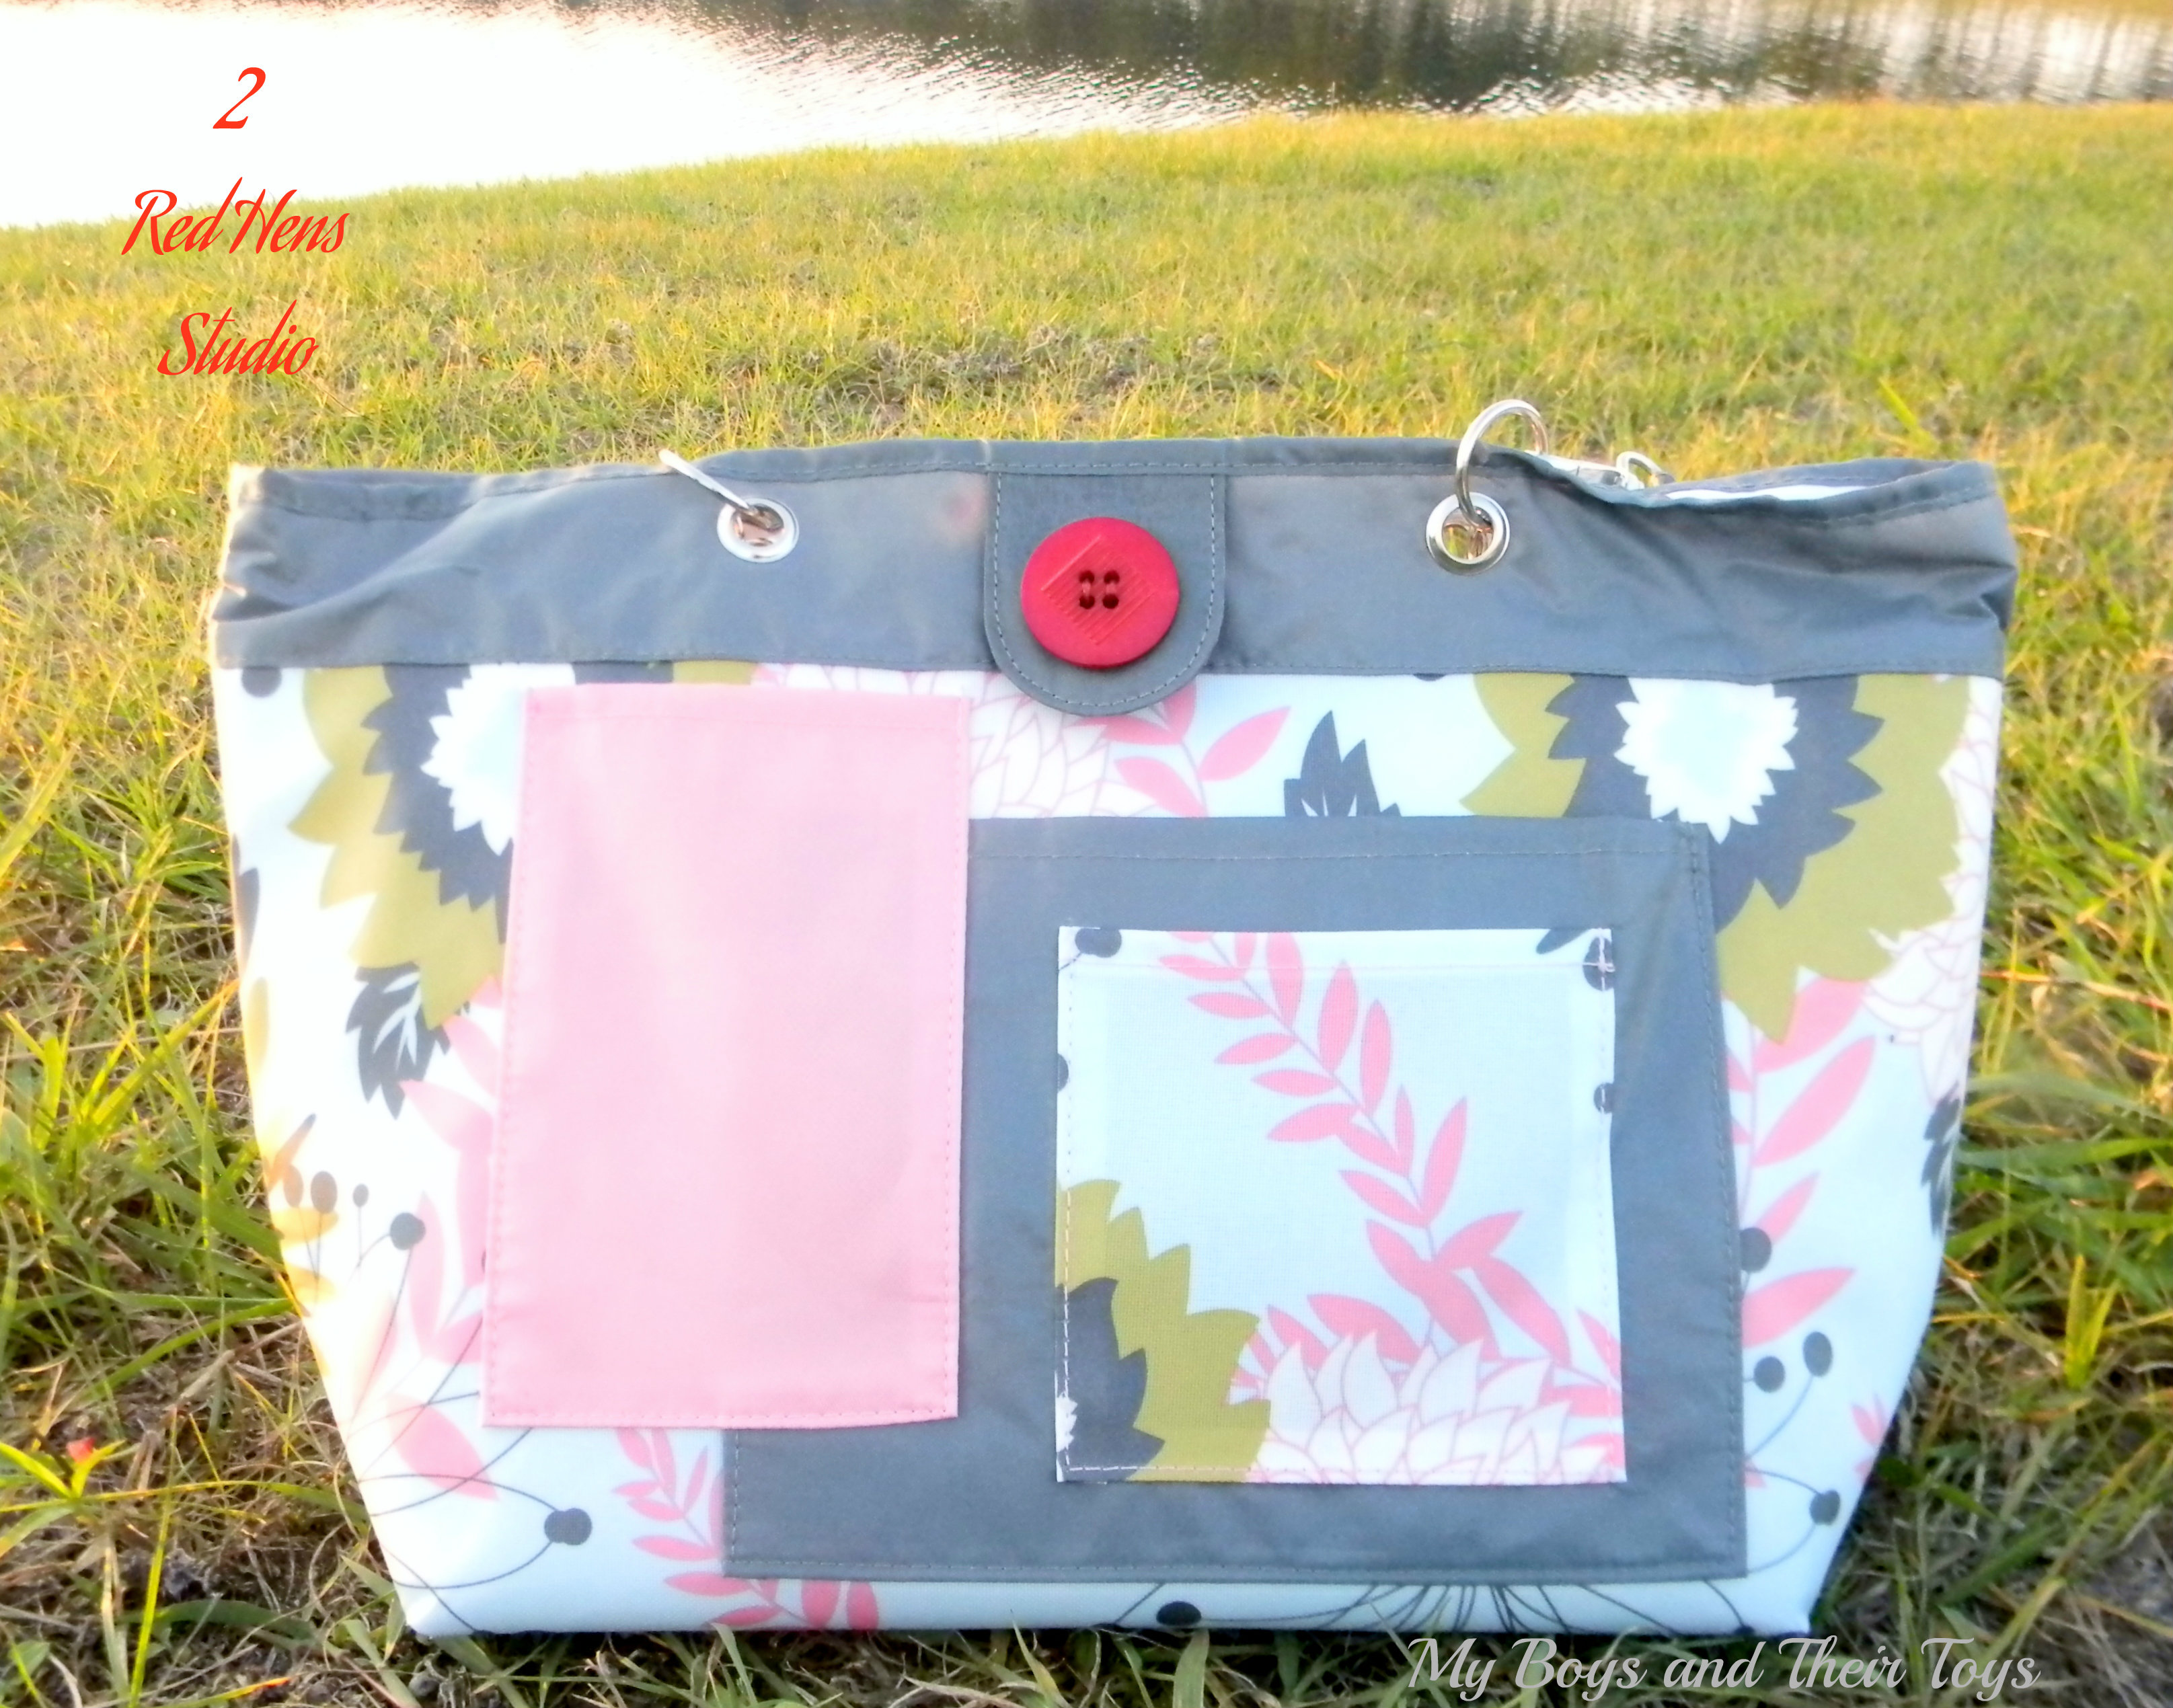 2RedHens Rooster Diaper Bag Review Giveaway